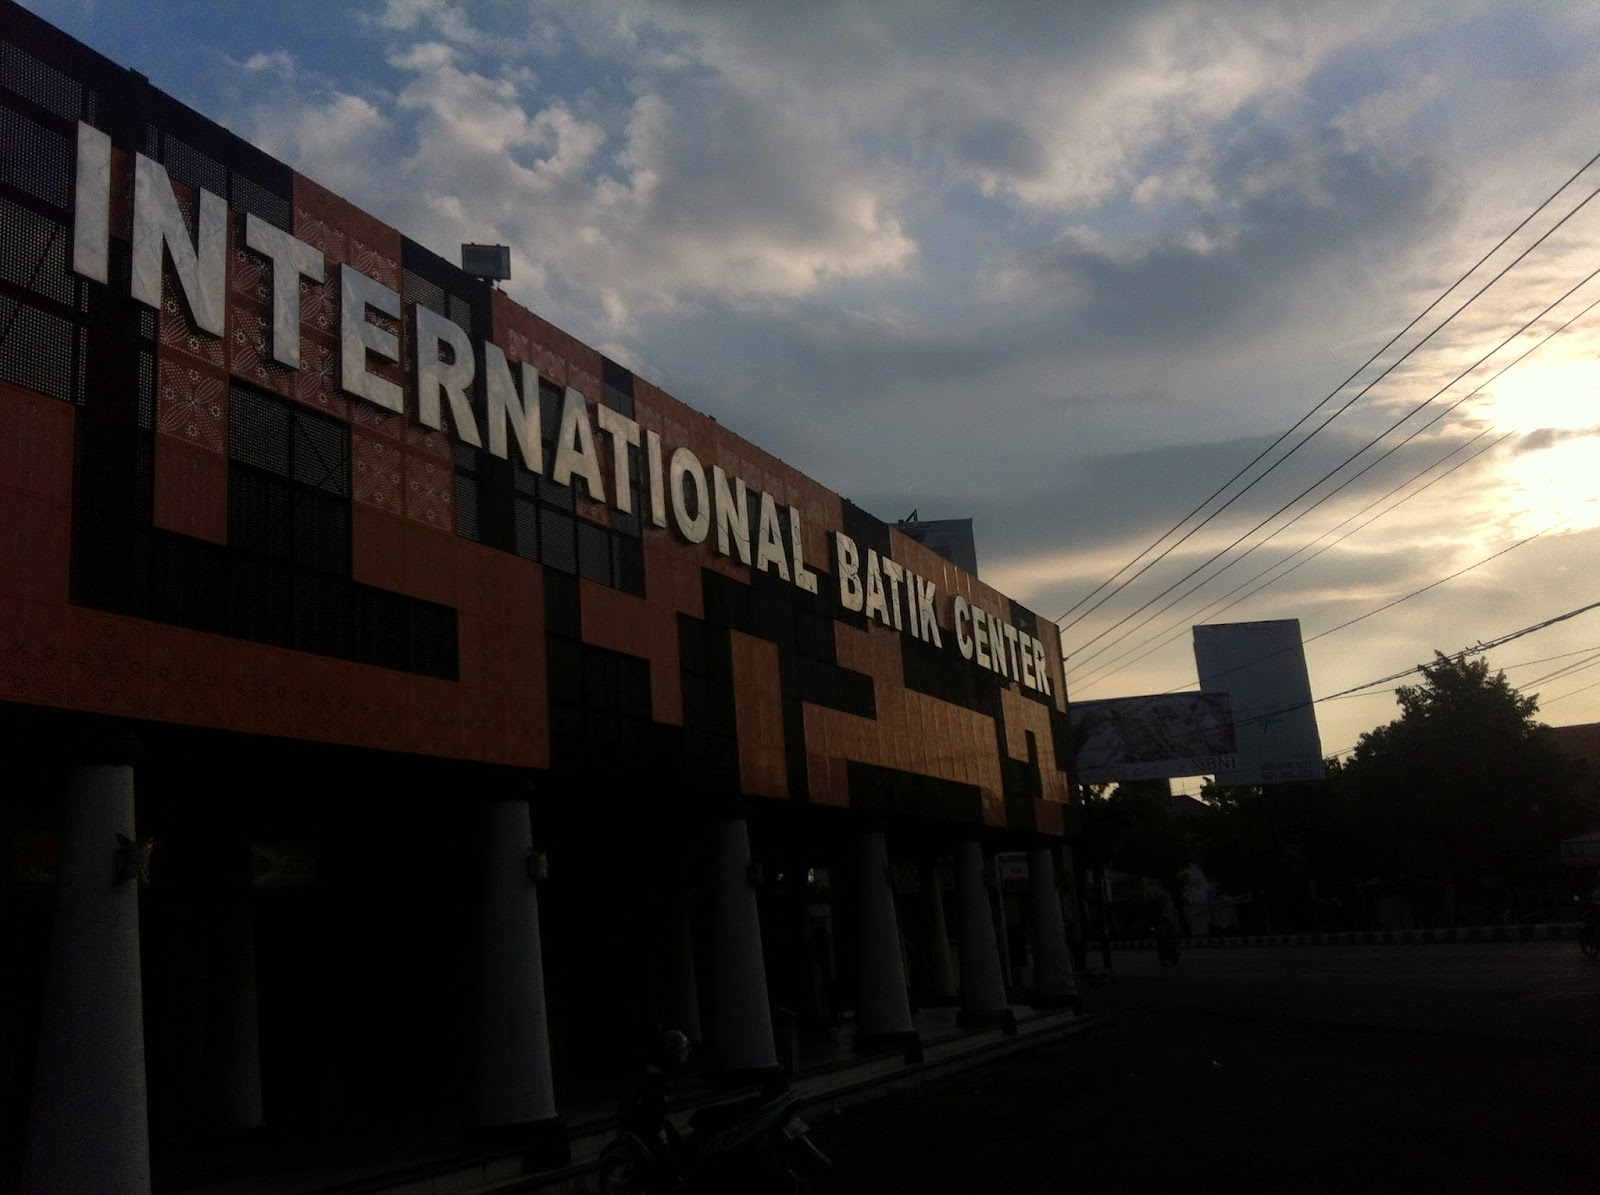 International Bank Center Pekalongan